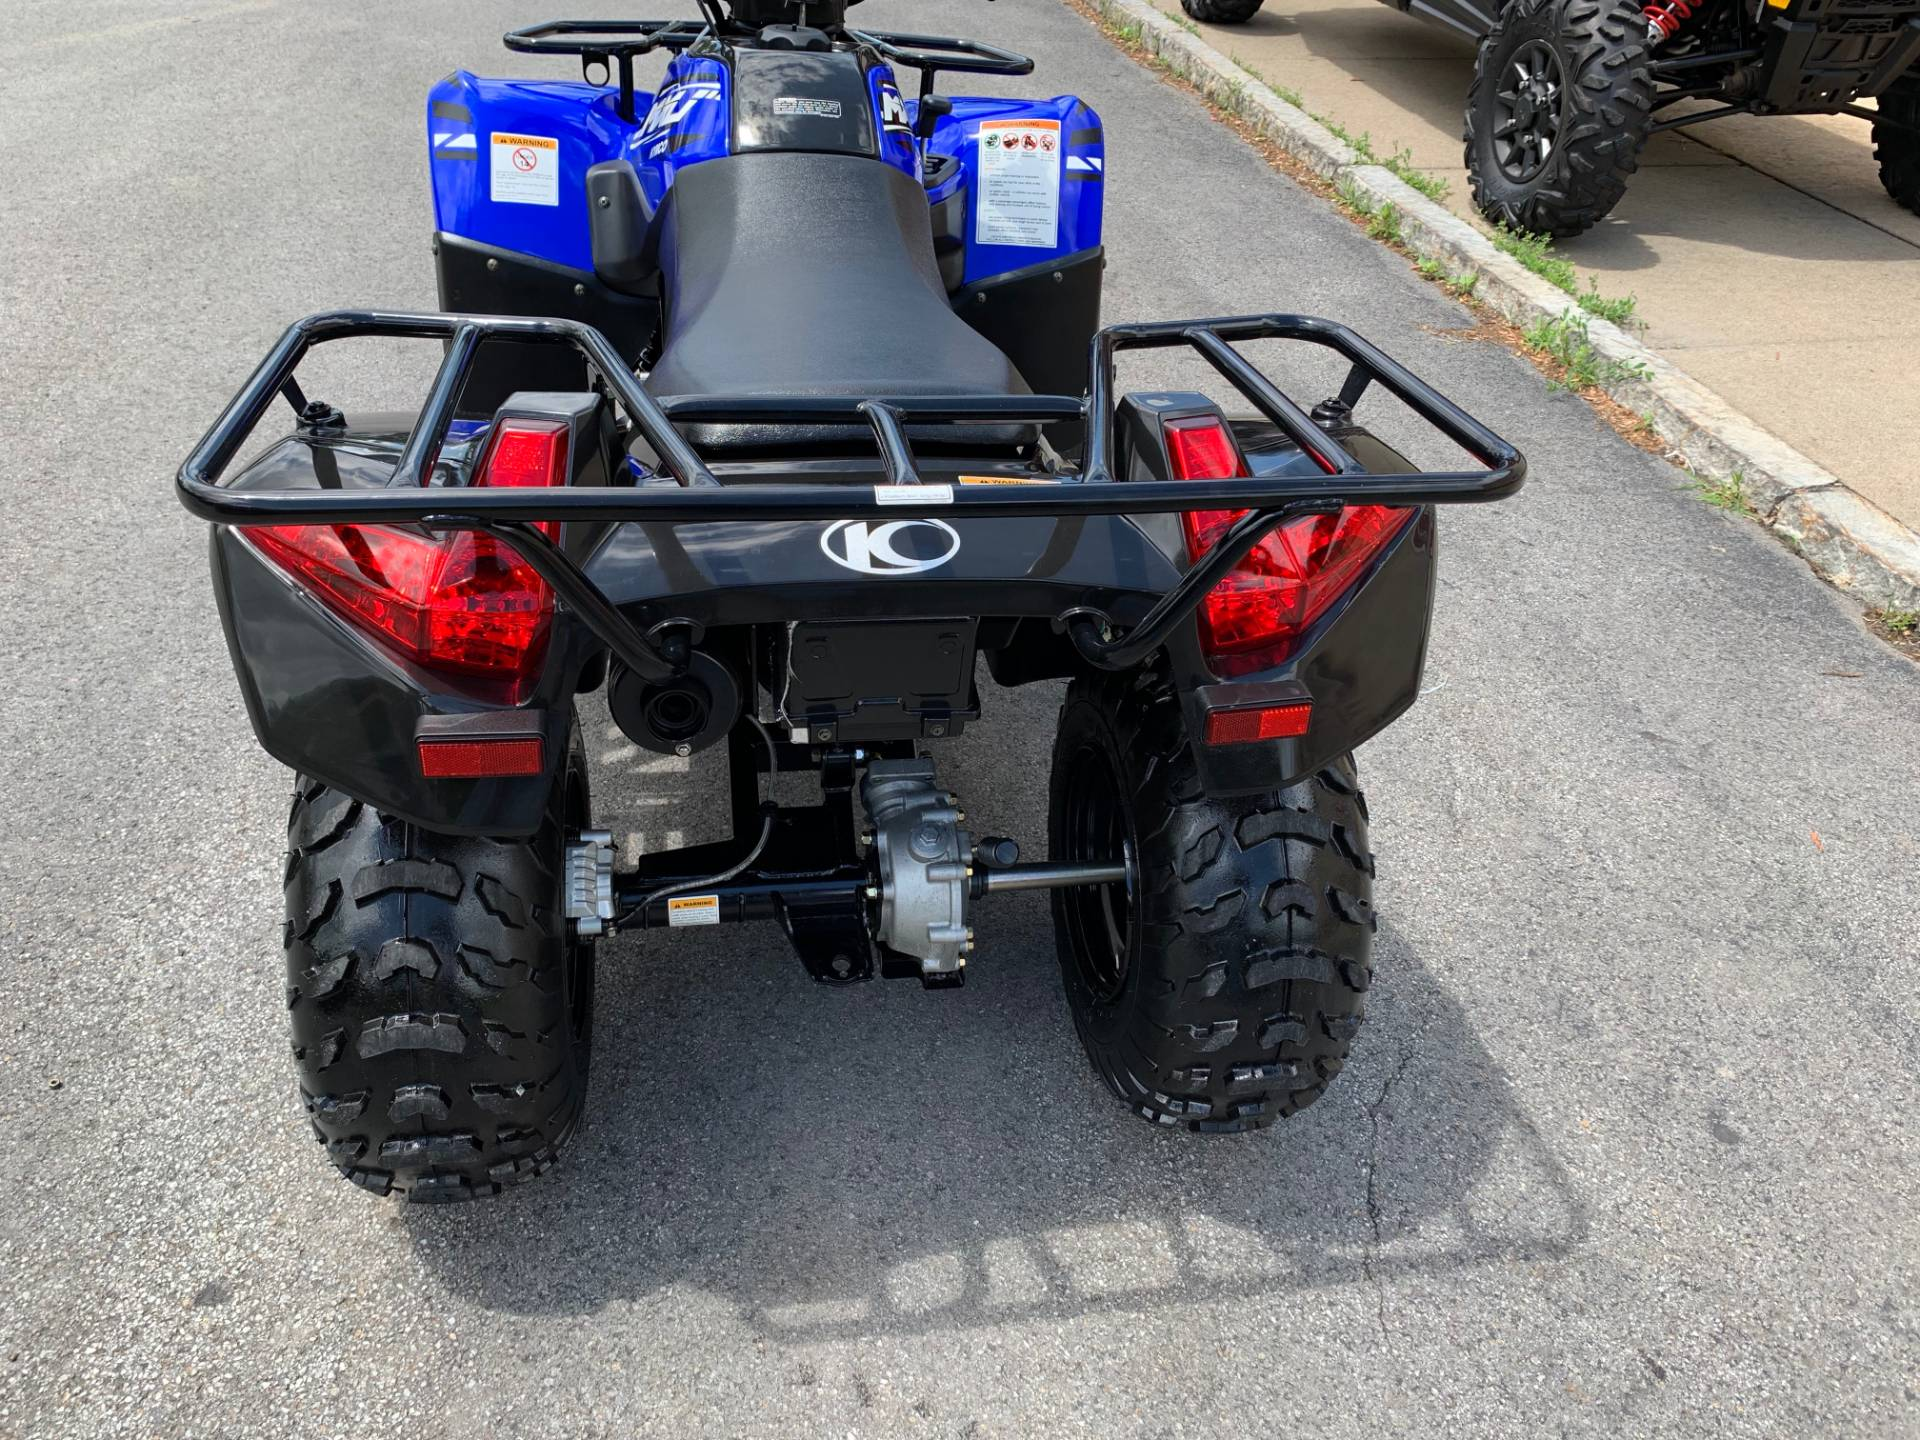 2018 Kymco MXU 270 in Herkimer, New York - Photo 13